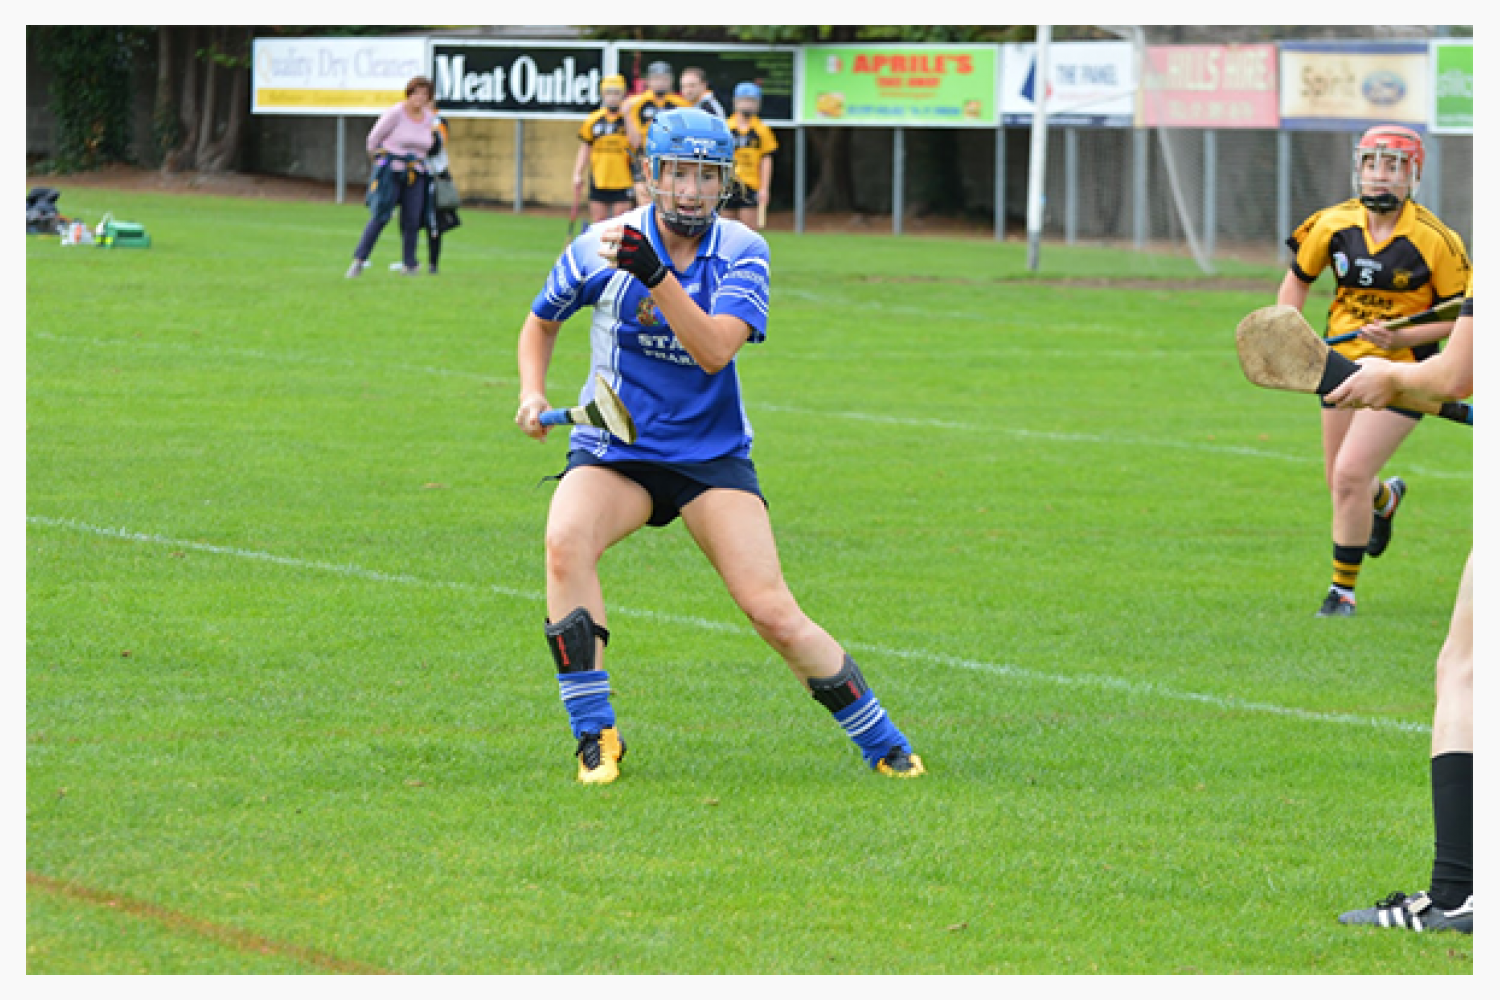 All Ireland Camogie 7's